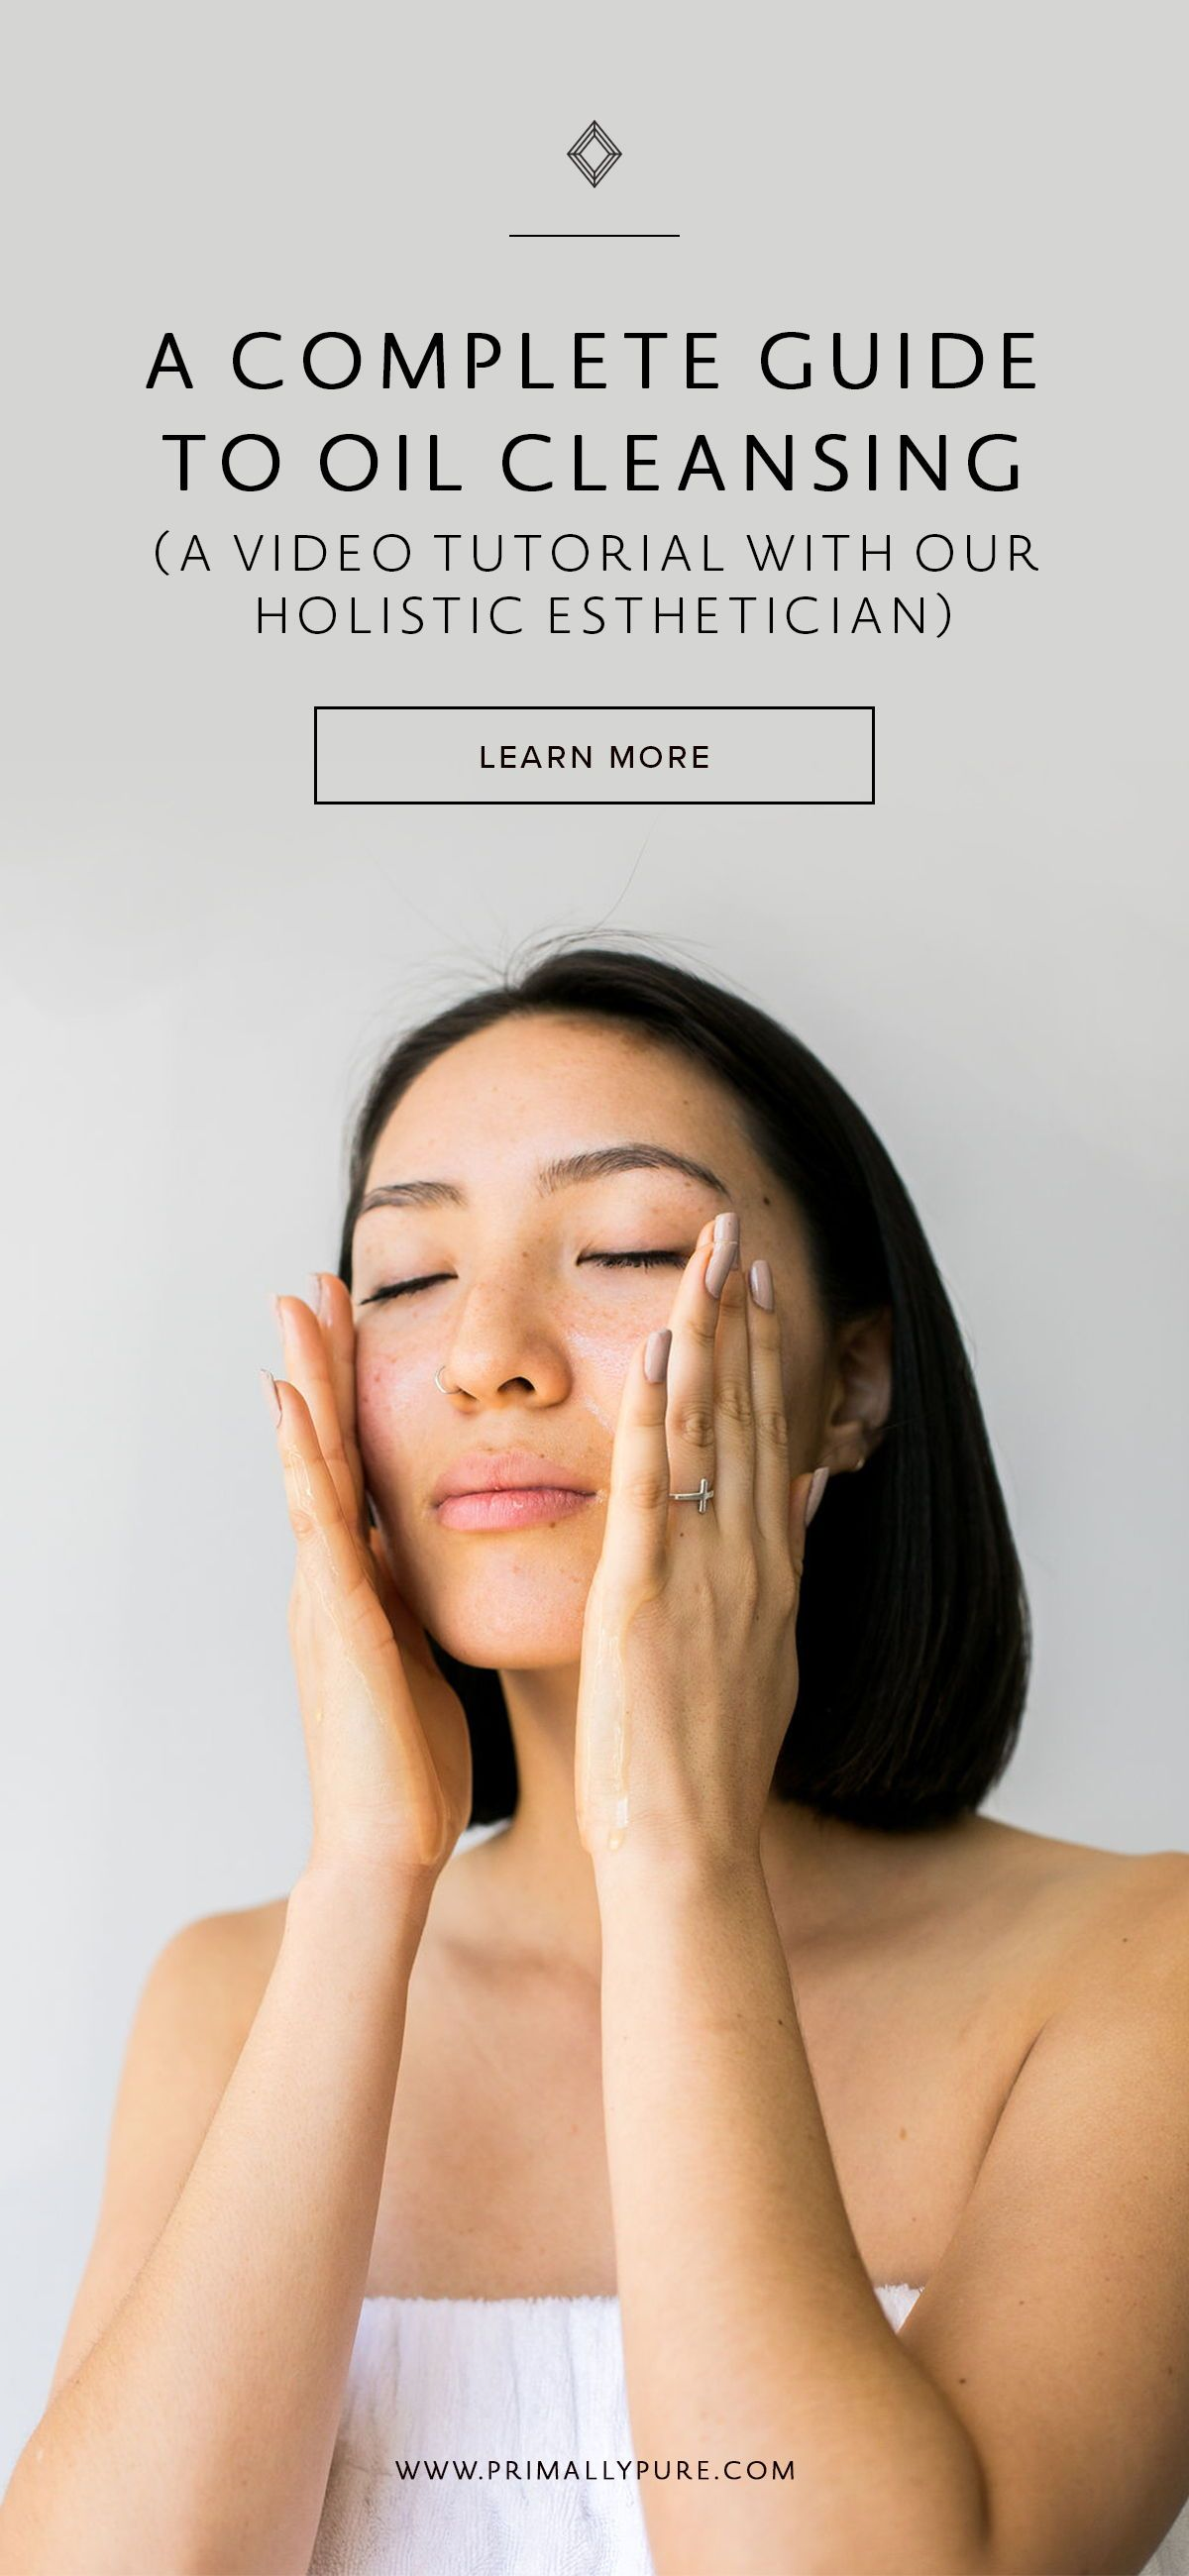 How To Oil Cleanse A Video Tutorial With Images Clear Skin